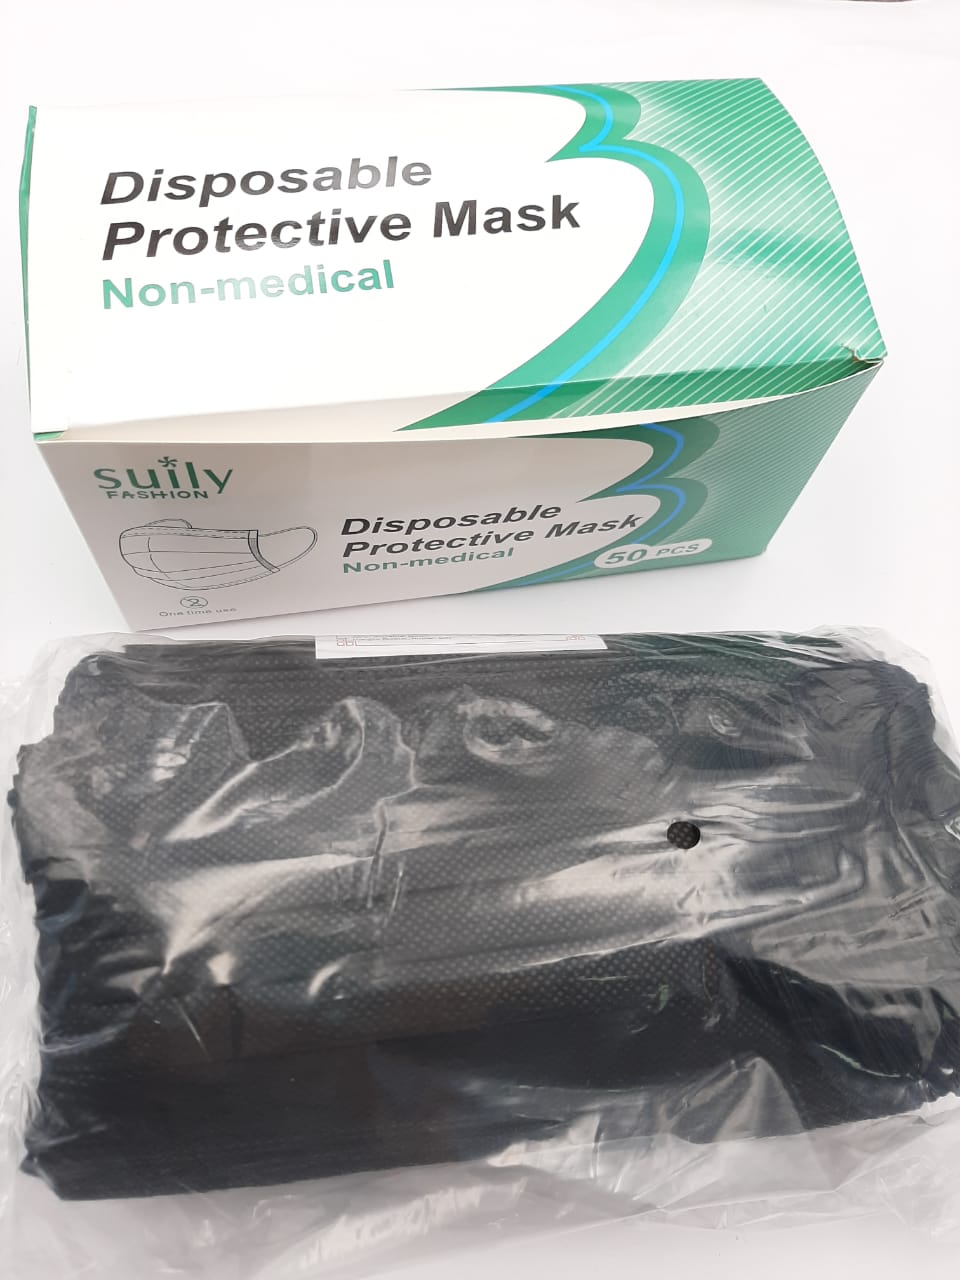 Face Mask (box contains 50 masks)